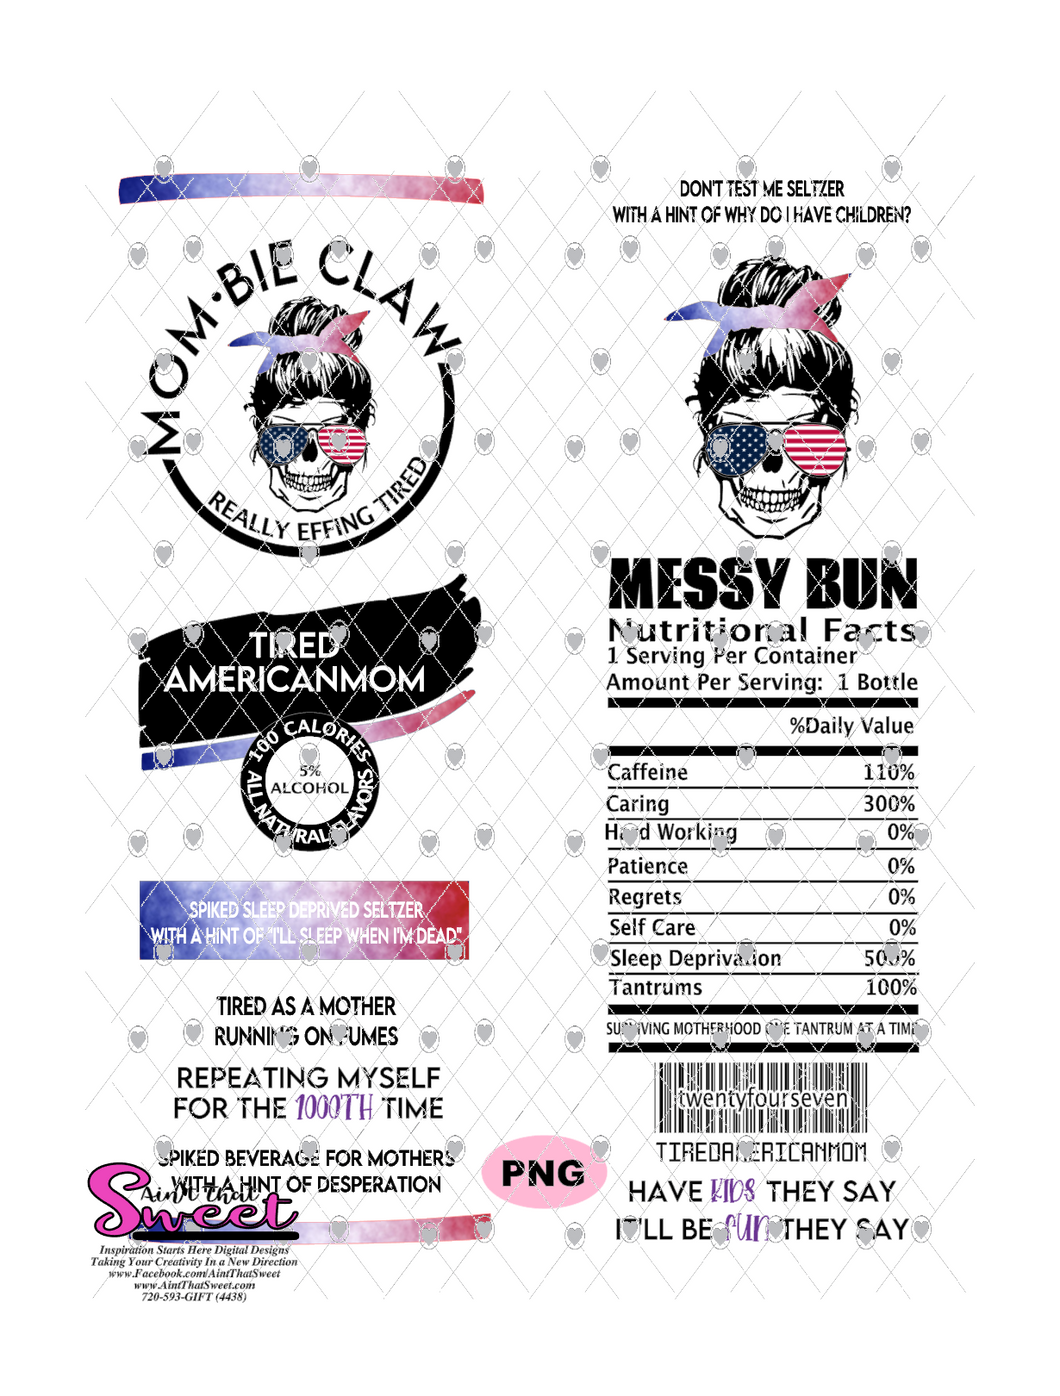 Messy Bun Skeleton Mombie Claw - #TiredAmericanMom - PNG Only (1 file) - Sublimation, Printing, Waterslide